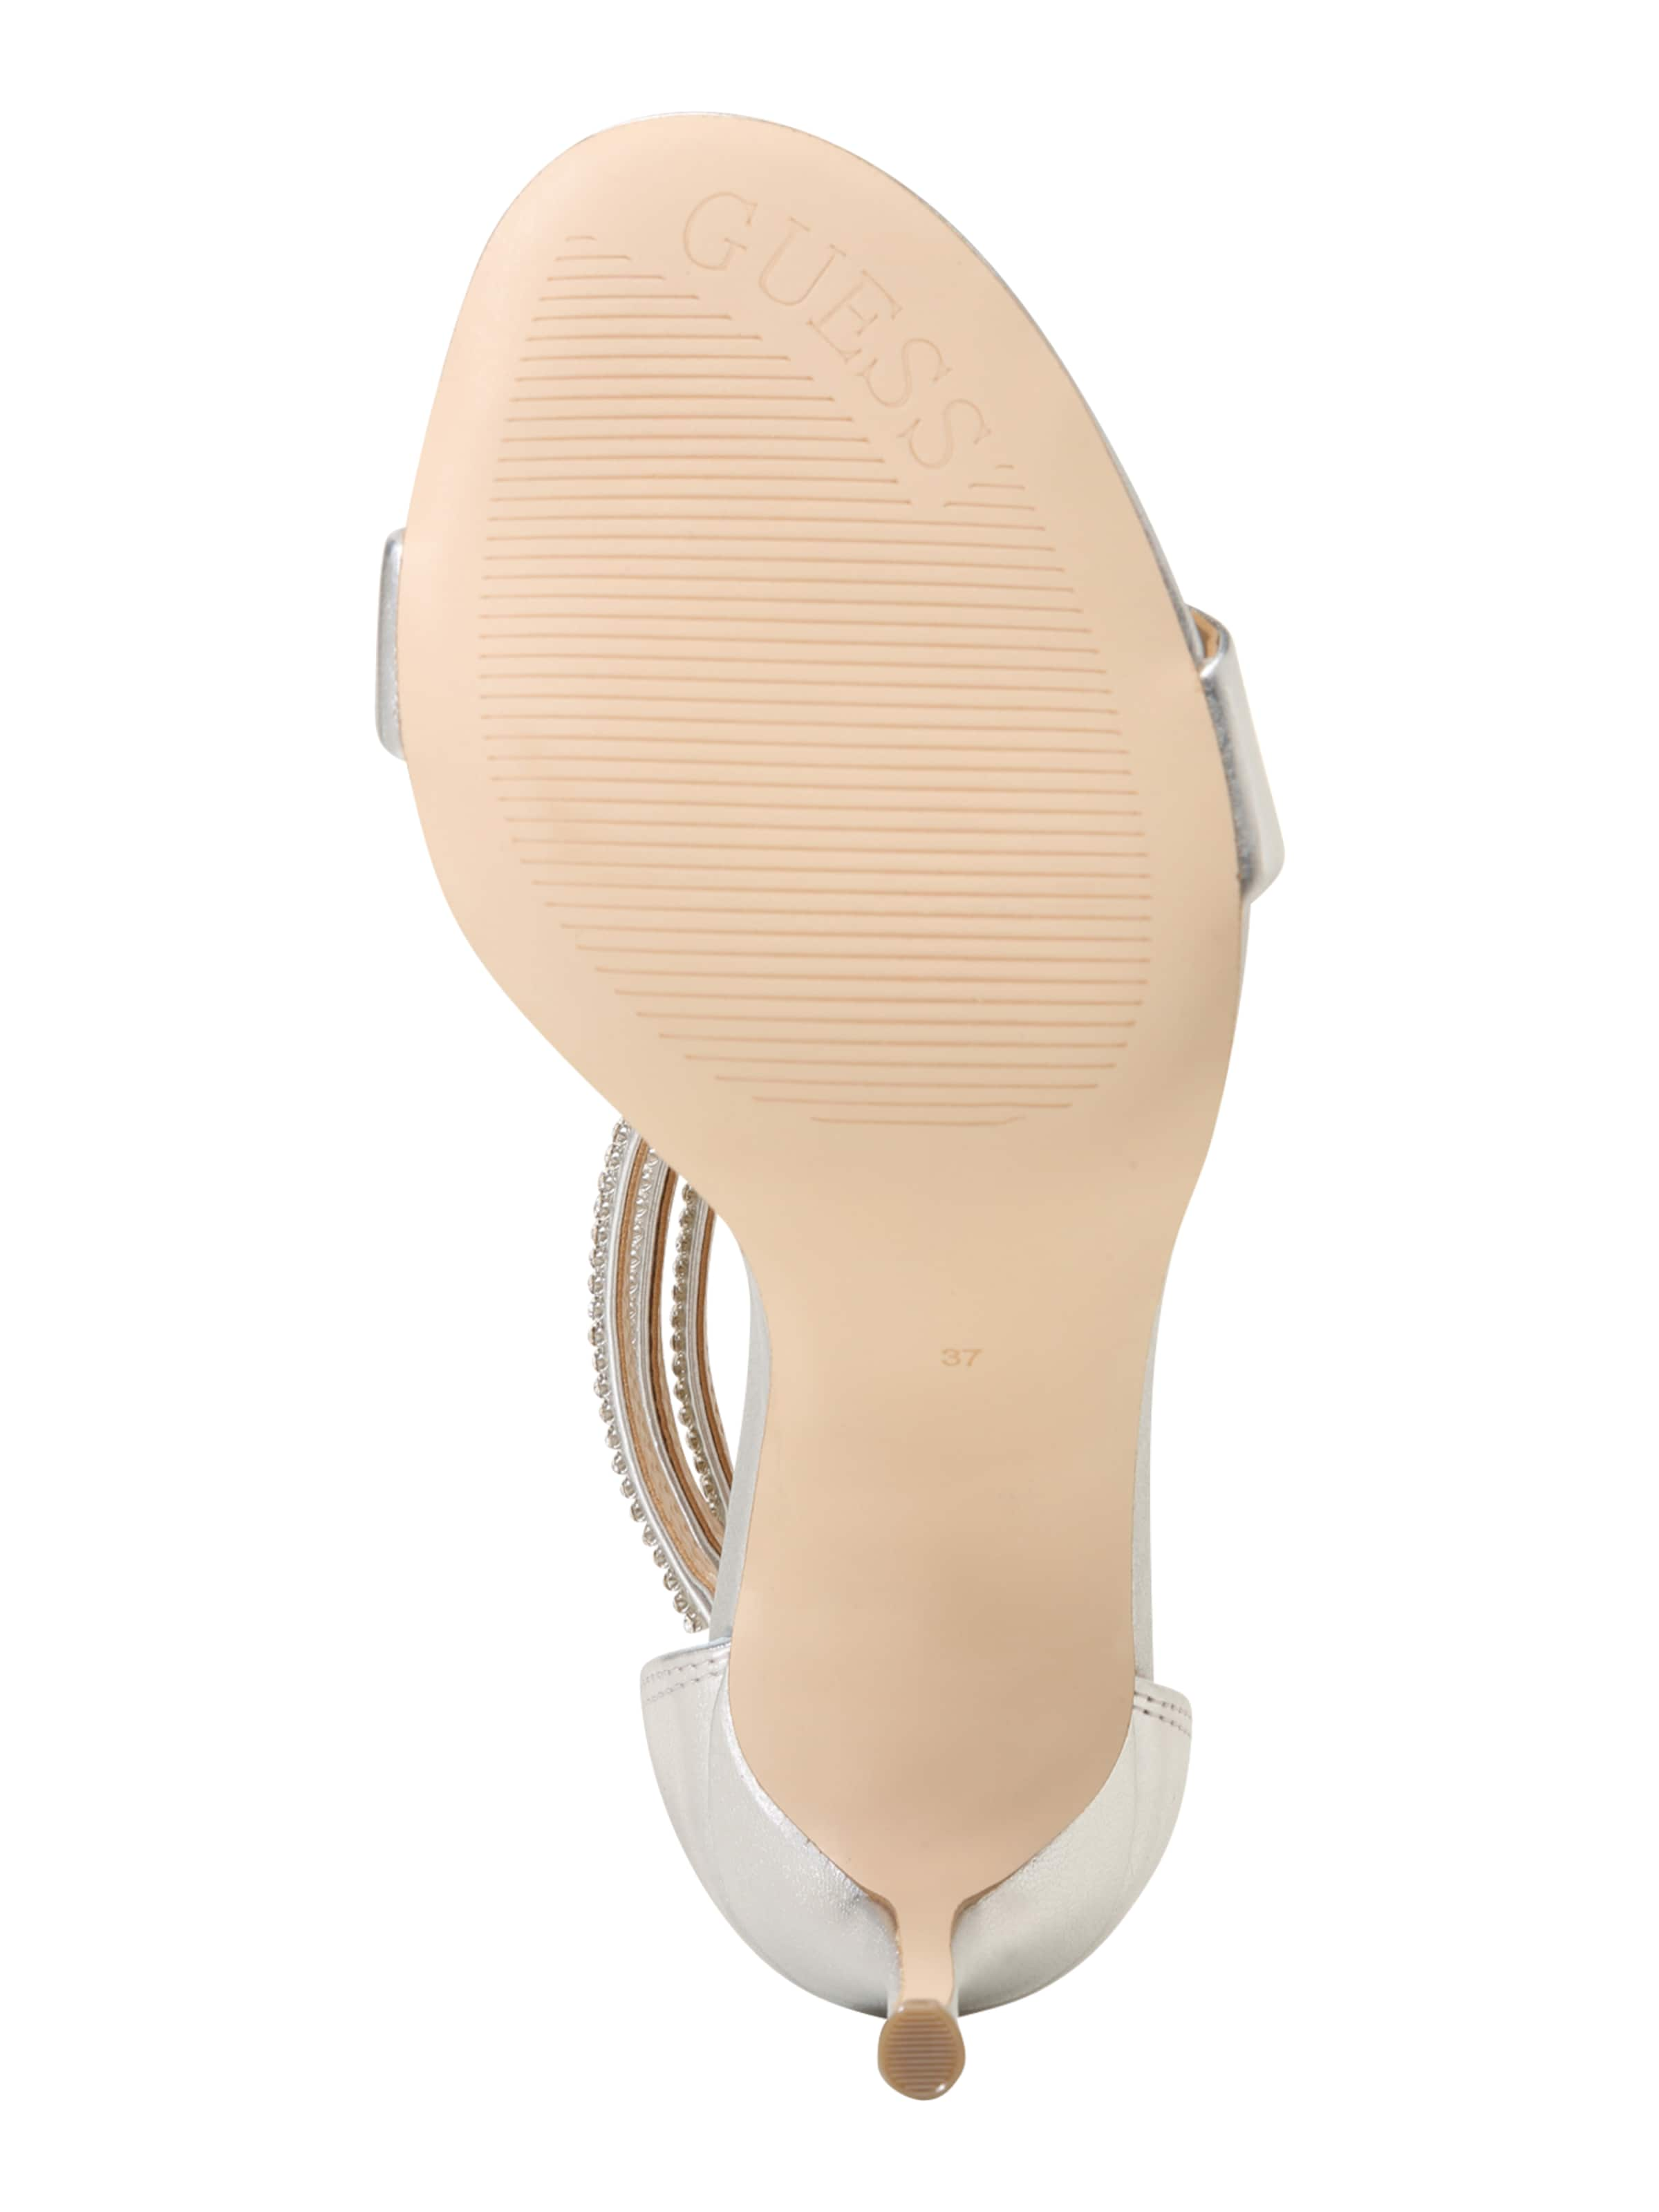 Guess In 'kathy' Guess In Guess Sandalette BeigeSilber Sandalette 'kathy' BeigeSilber ARjL54